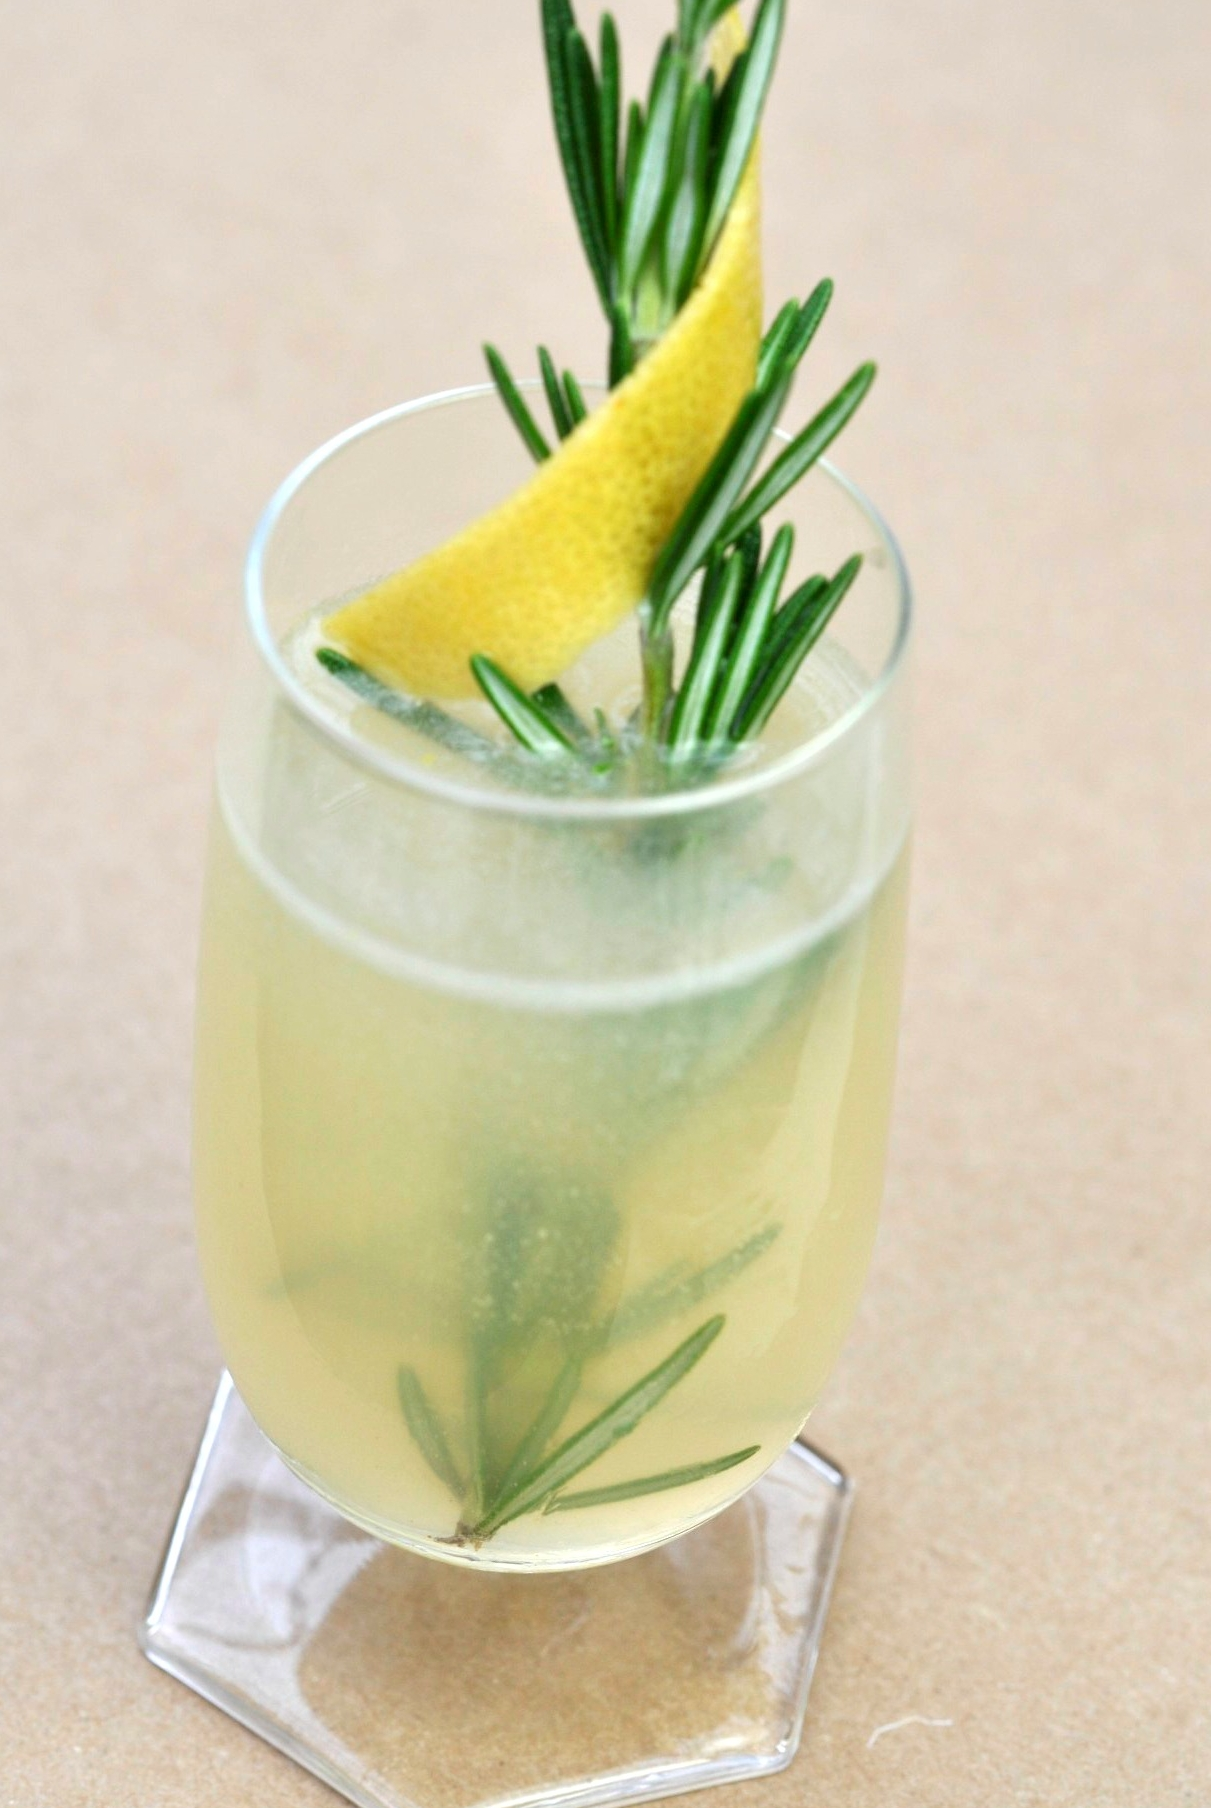 Herbs & Flowers   Syrup: Grapefruit Rosemary  Spirit:Gin, St. Germain